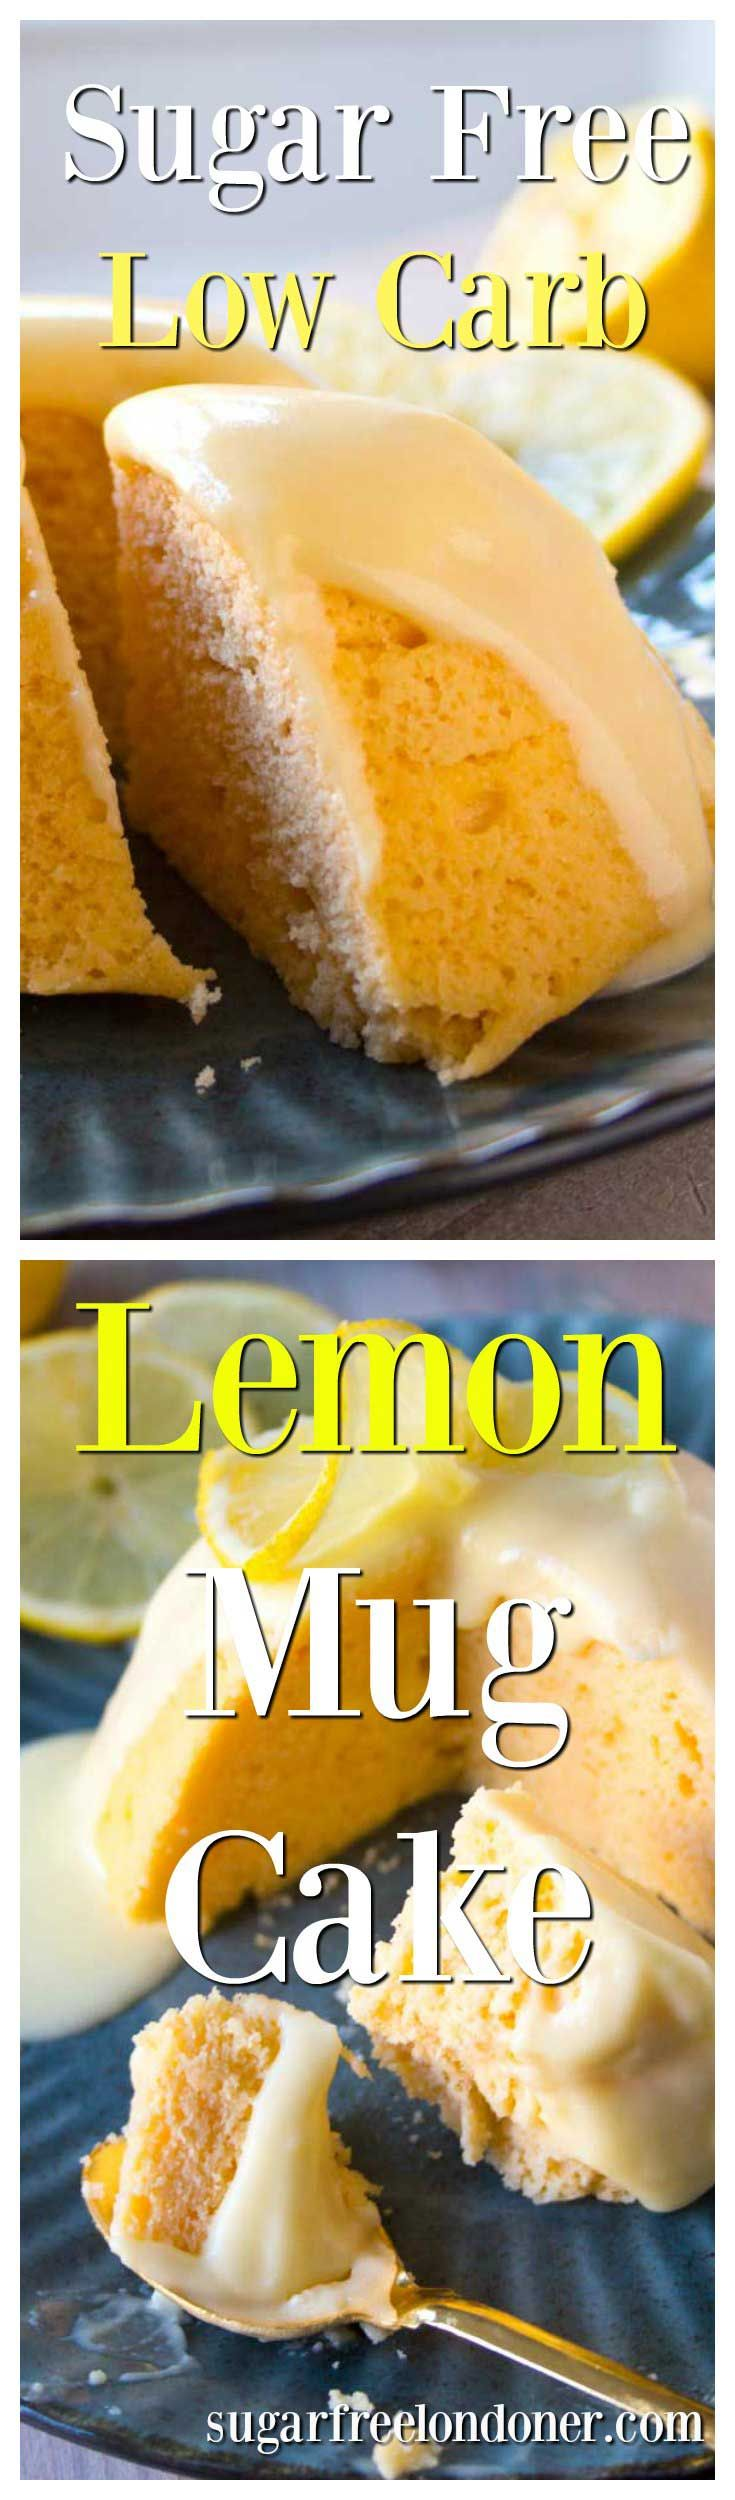 Big flavour, light texture and ready in 3 minutes: Try this easy sugar free lemon mug cake with a deliciously zingy lemon glaze. Low carb, gluten free and keto-friendly.